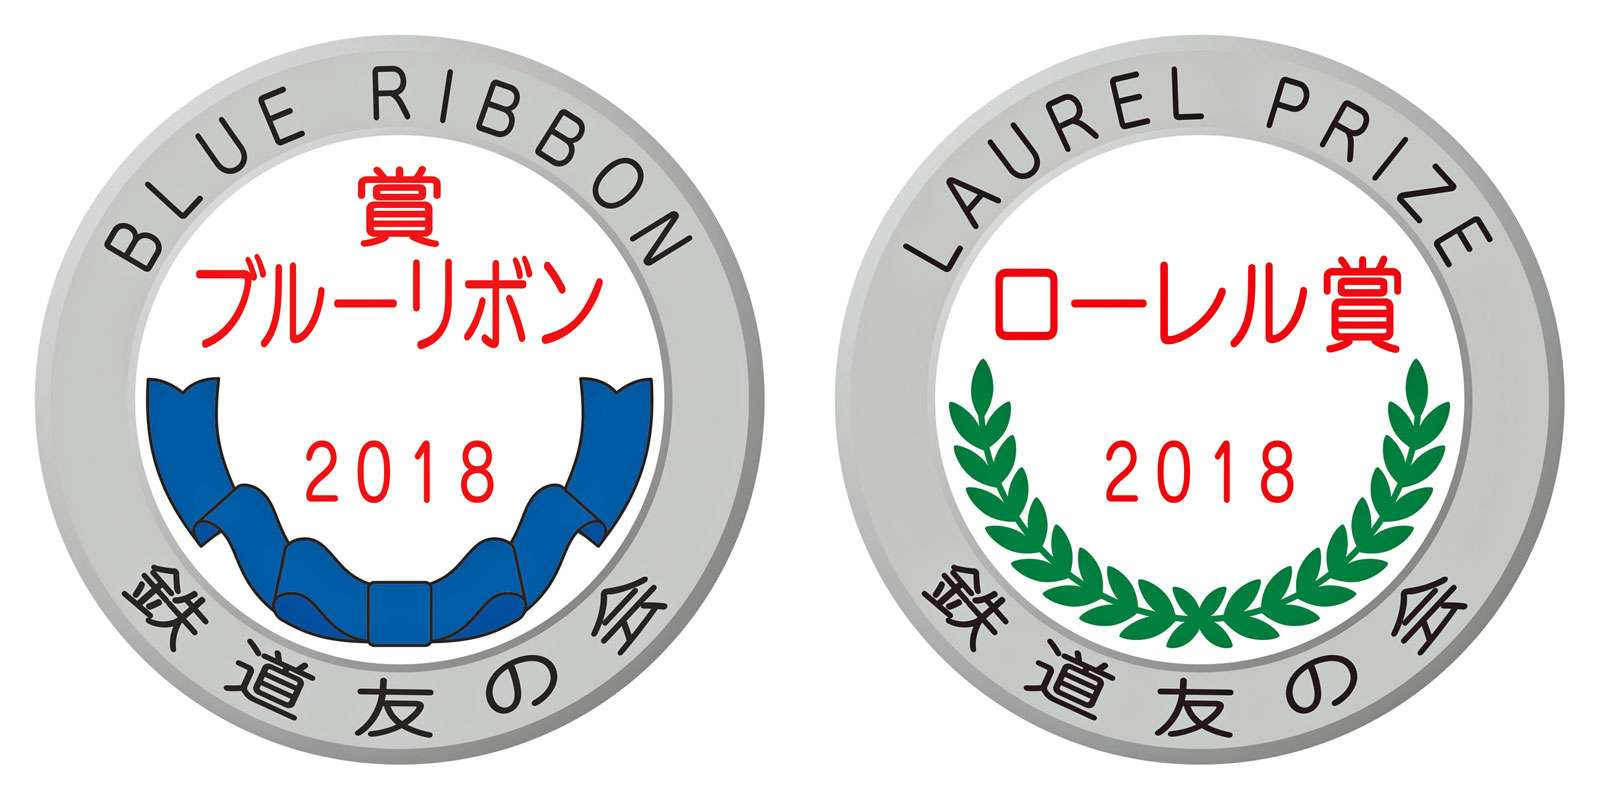 Blue Ribbon Award dan Laurel Prize | Sumber: JRC